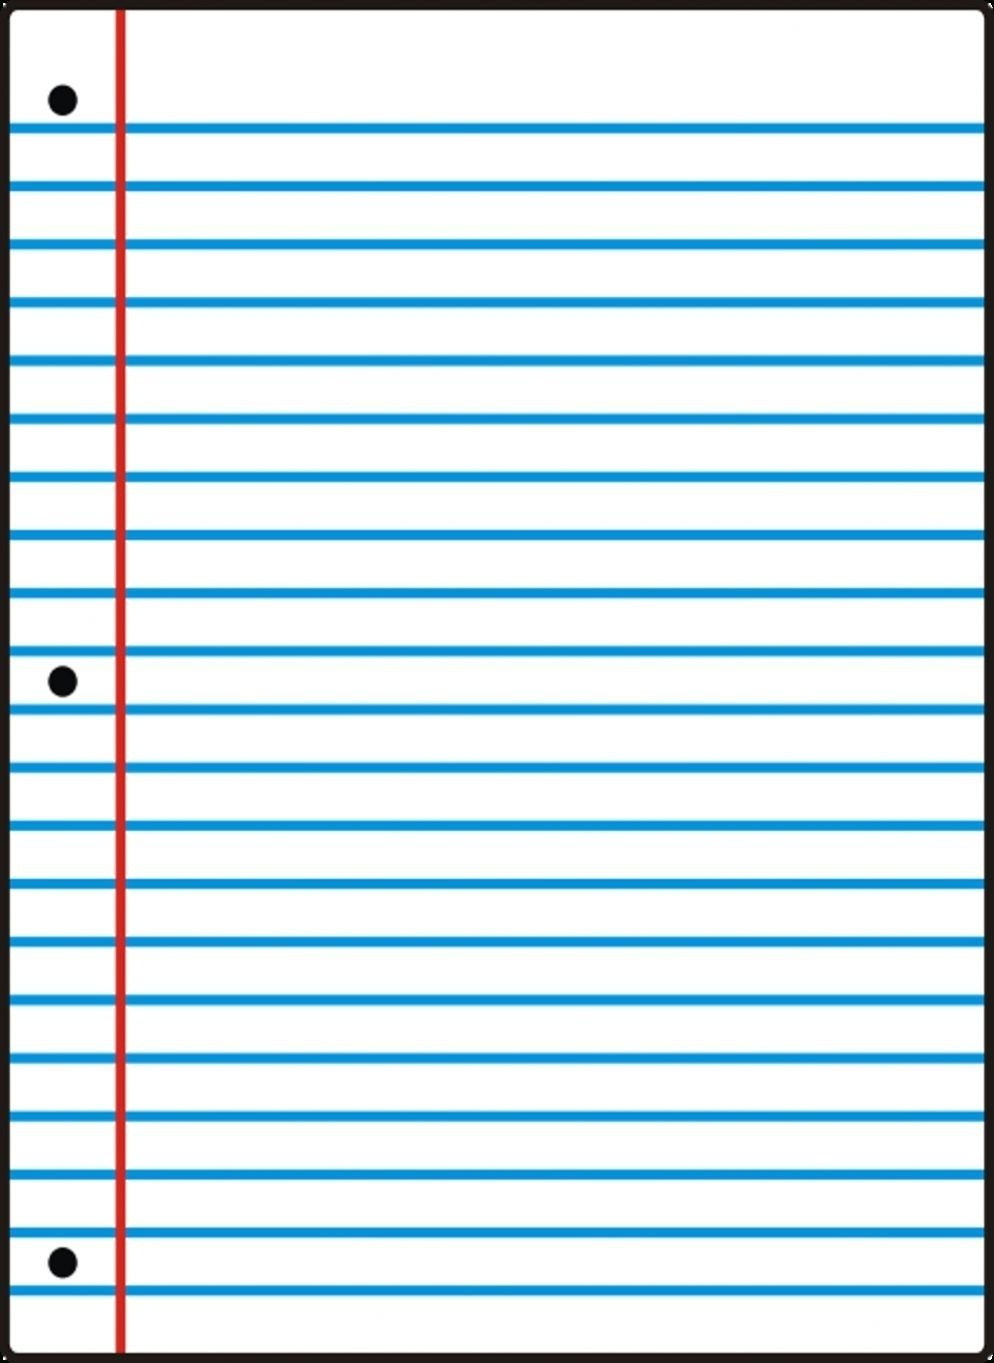 Free Printable Notebook Paper College & Wide Ruled Inside Wide Ruled - Free Printable Notebook Paper